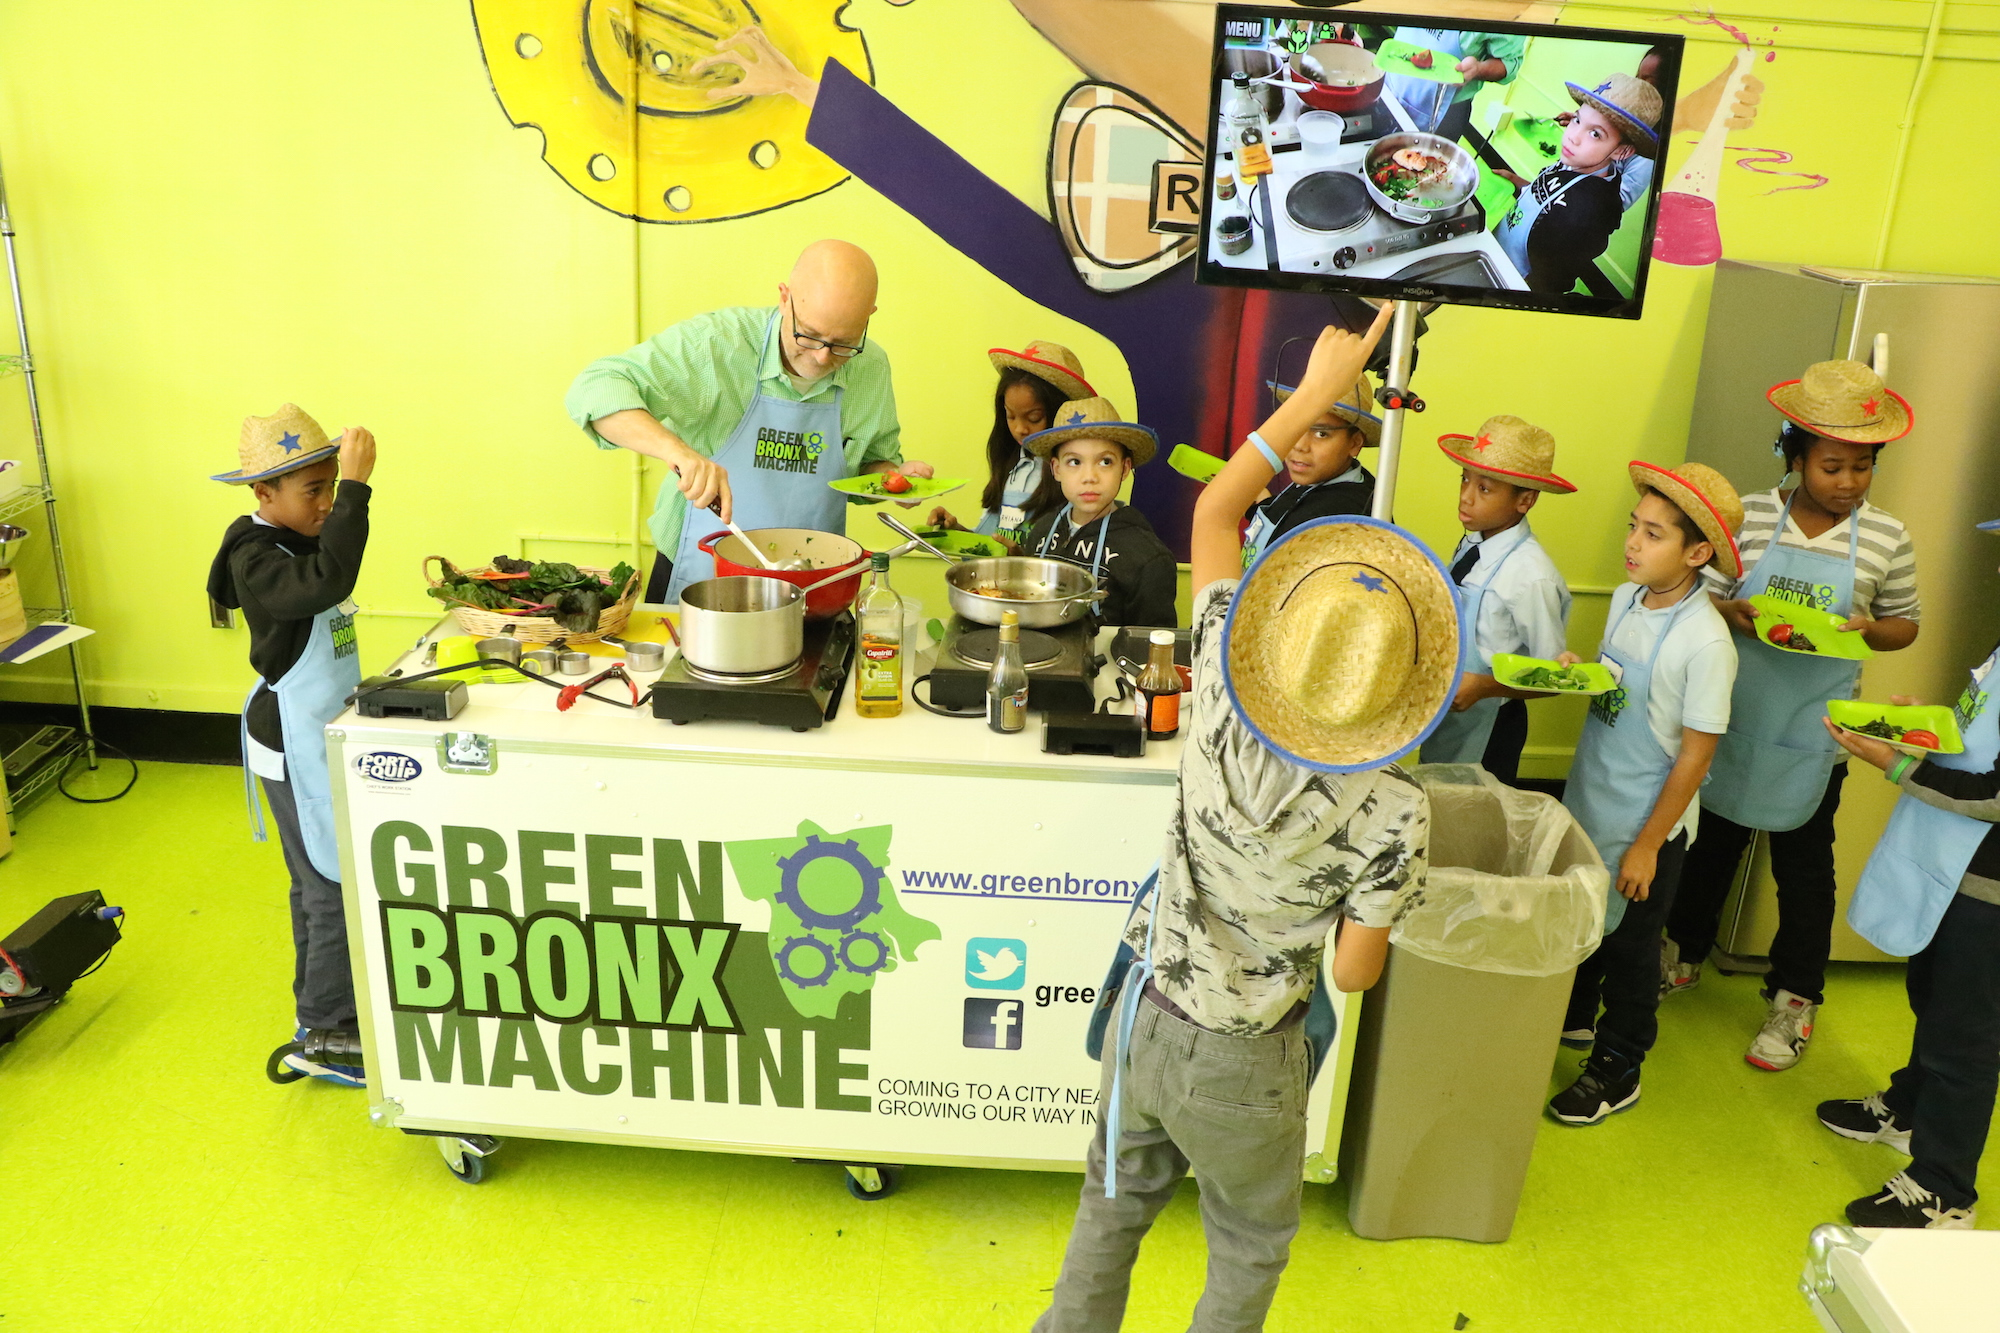 the green bronx machine